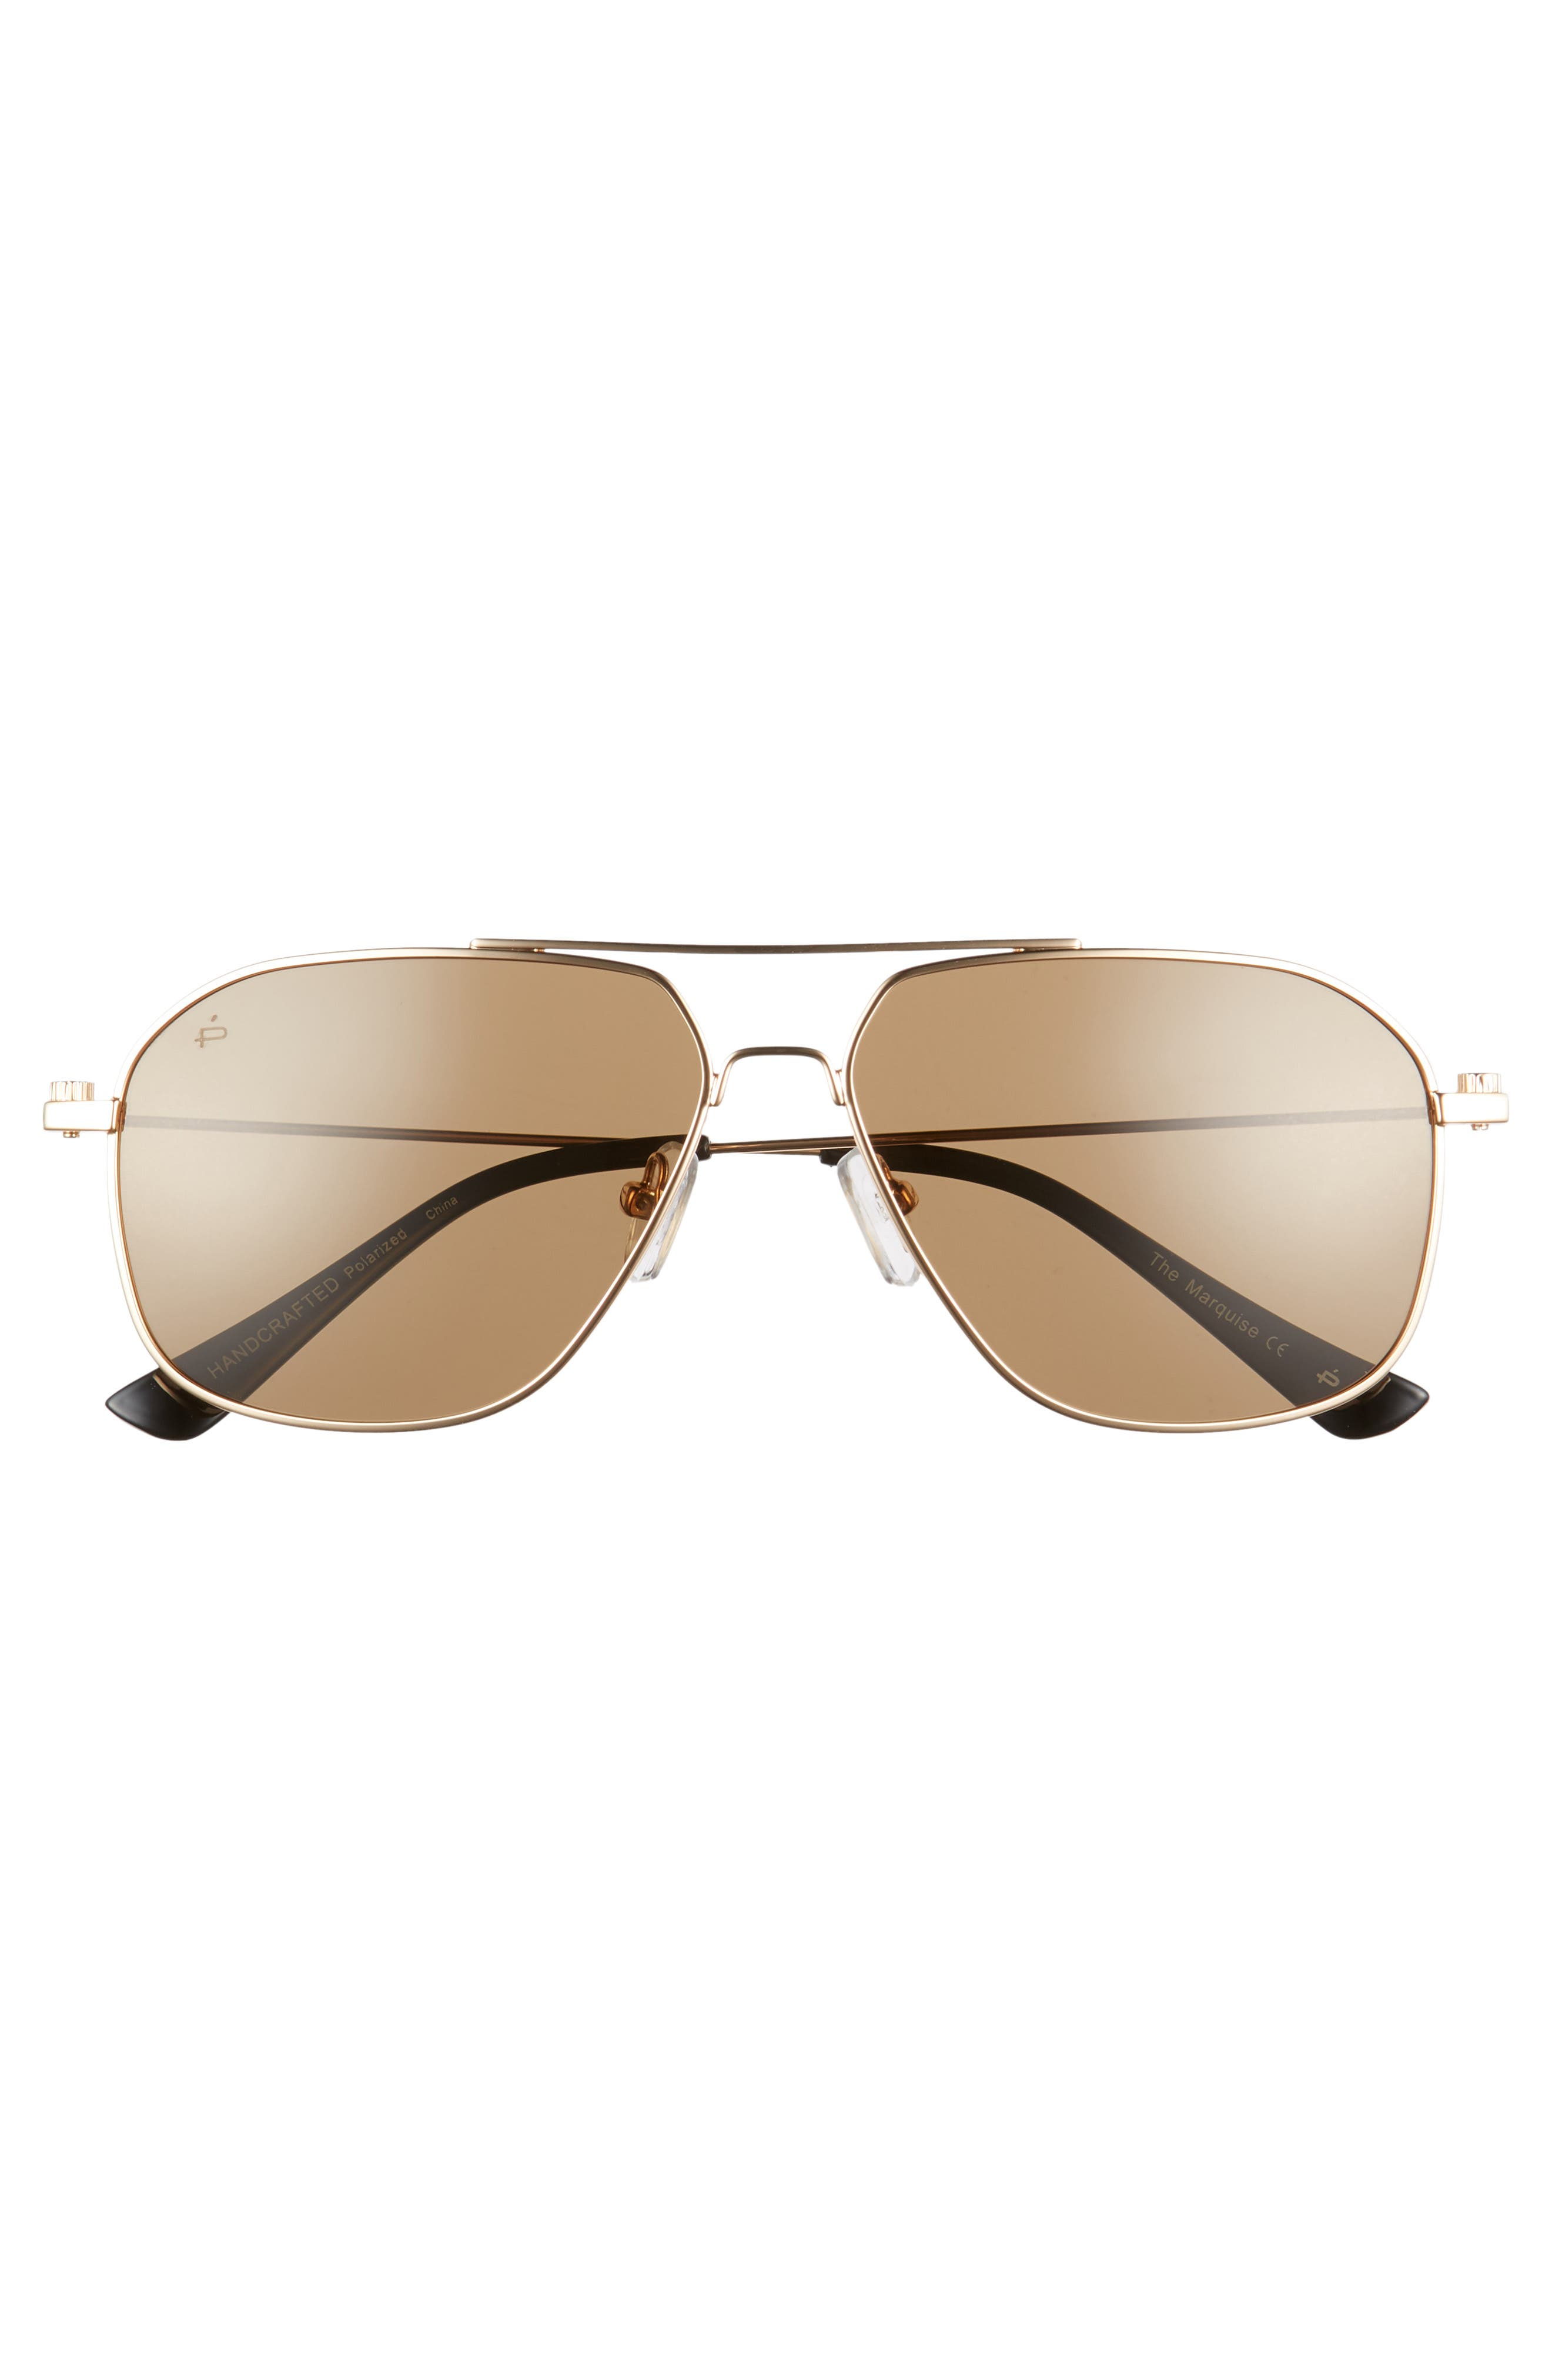 Privé Revaux The Marquise 58mm Aviator Sunglasses,                             Alternate thumbnail 3, color,                             710